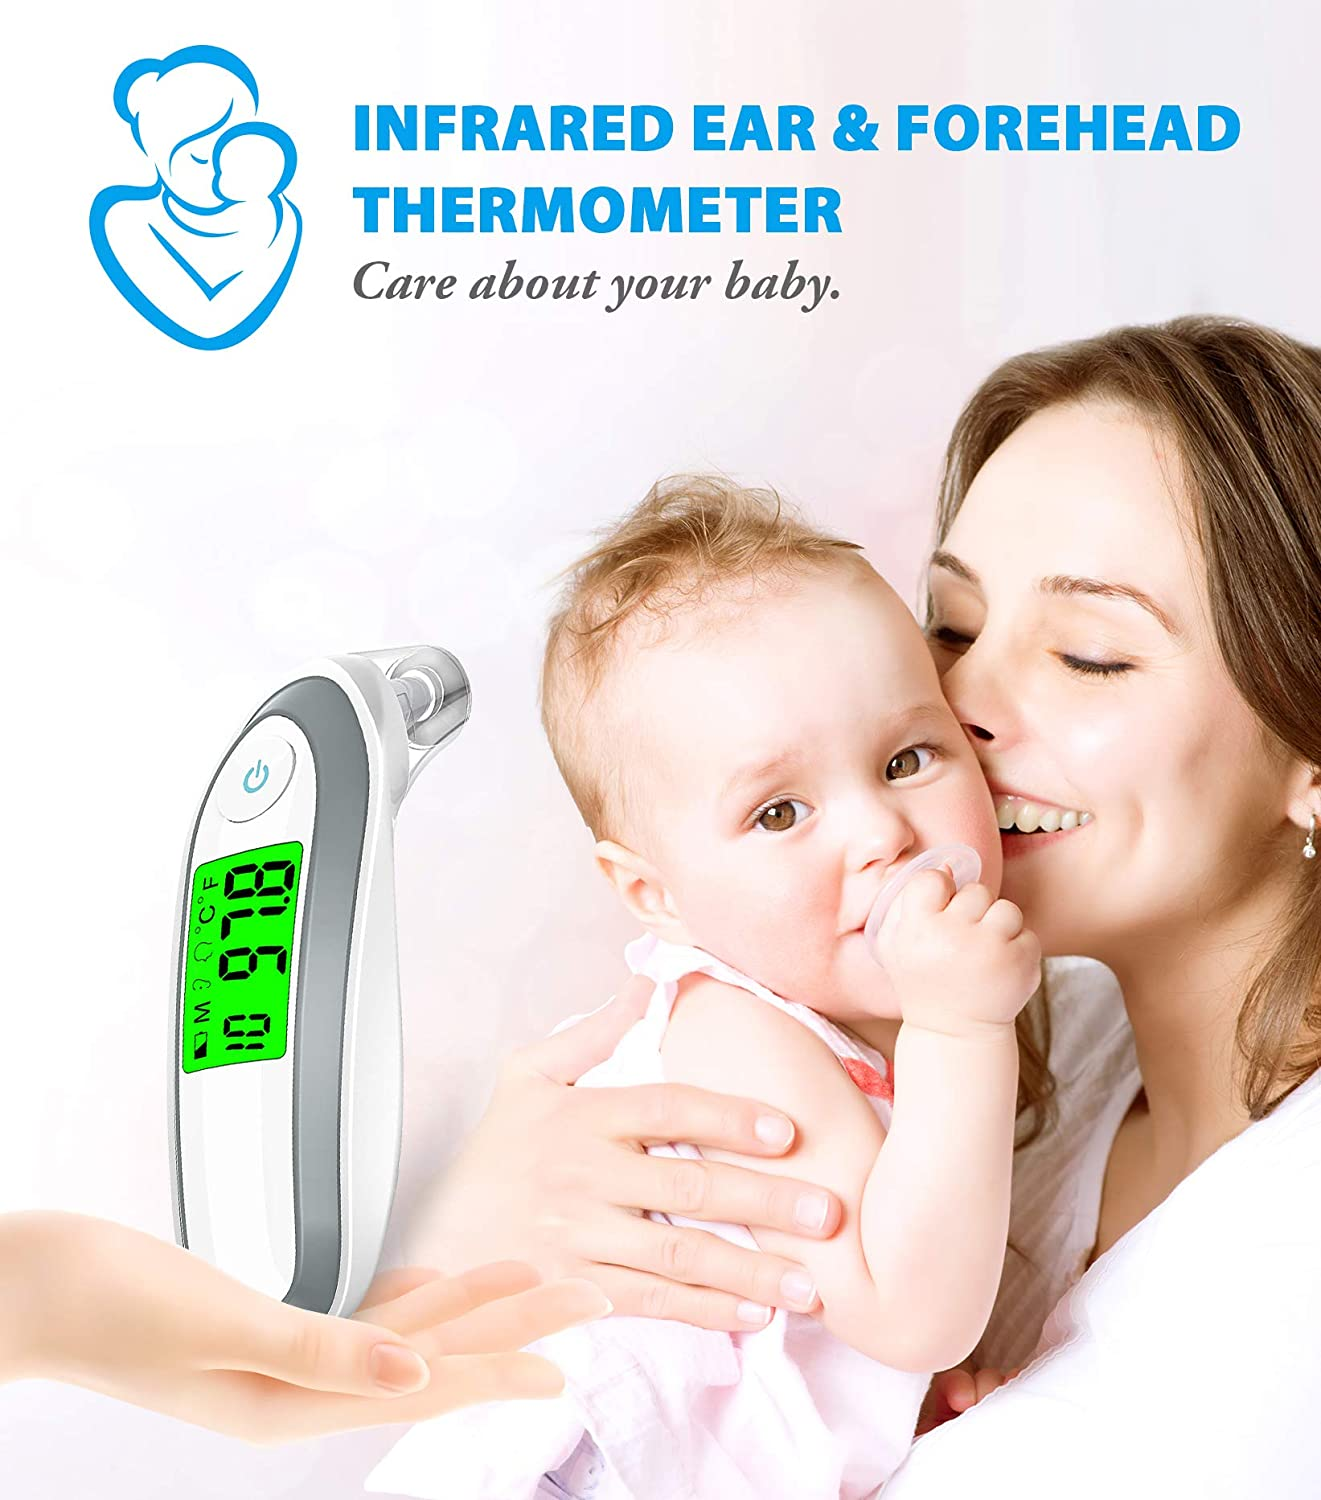 Amazon.com : Digital Forehead Thermometer Medical Baby Ear and Forehead Thermometer for Kids, FDA Approved for Fever, Fahrenheit and Celsius Convertible : ...